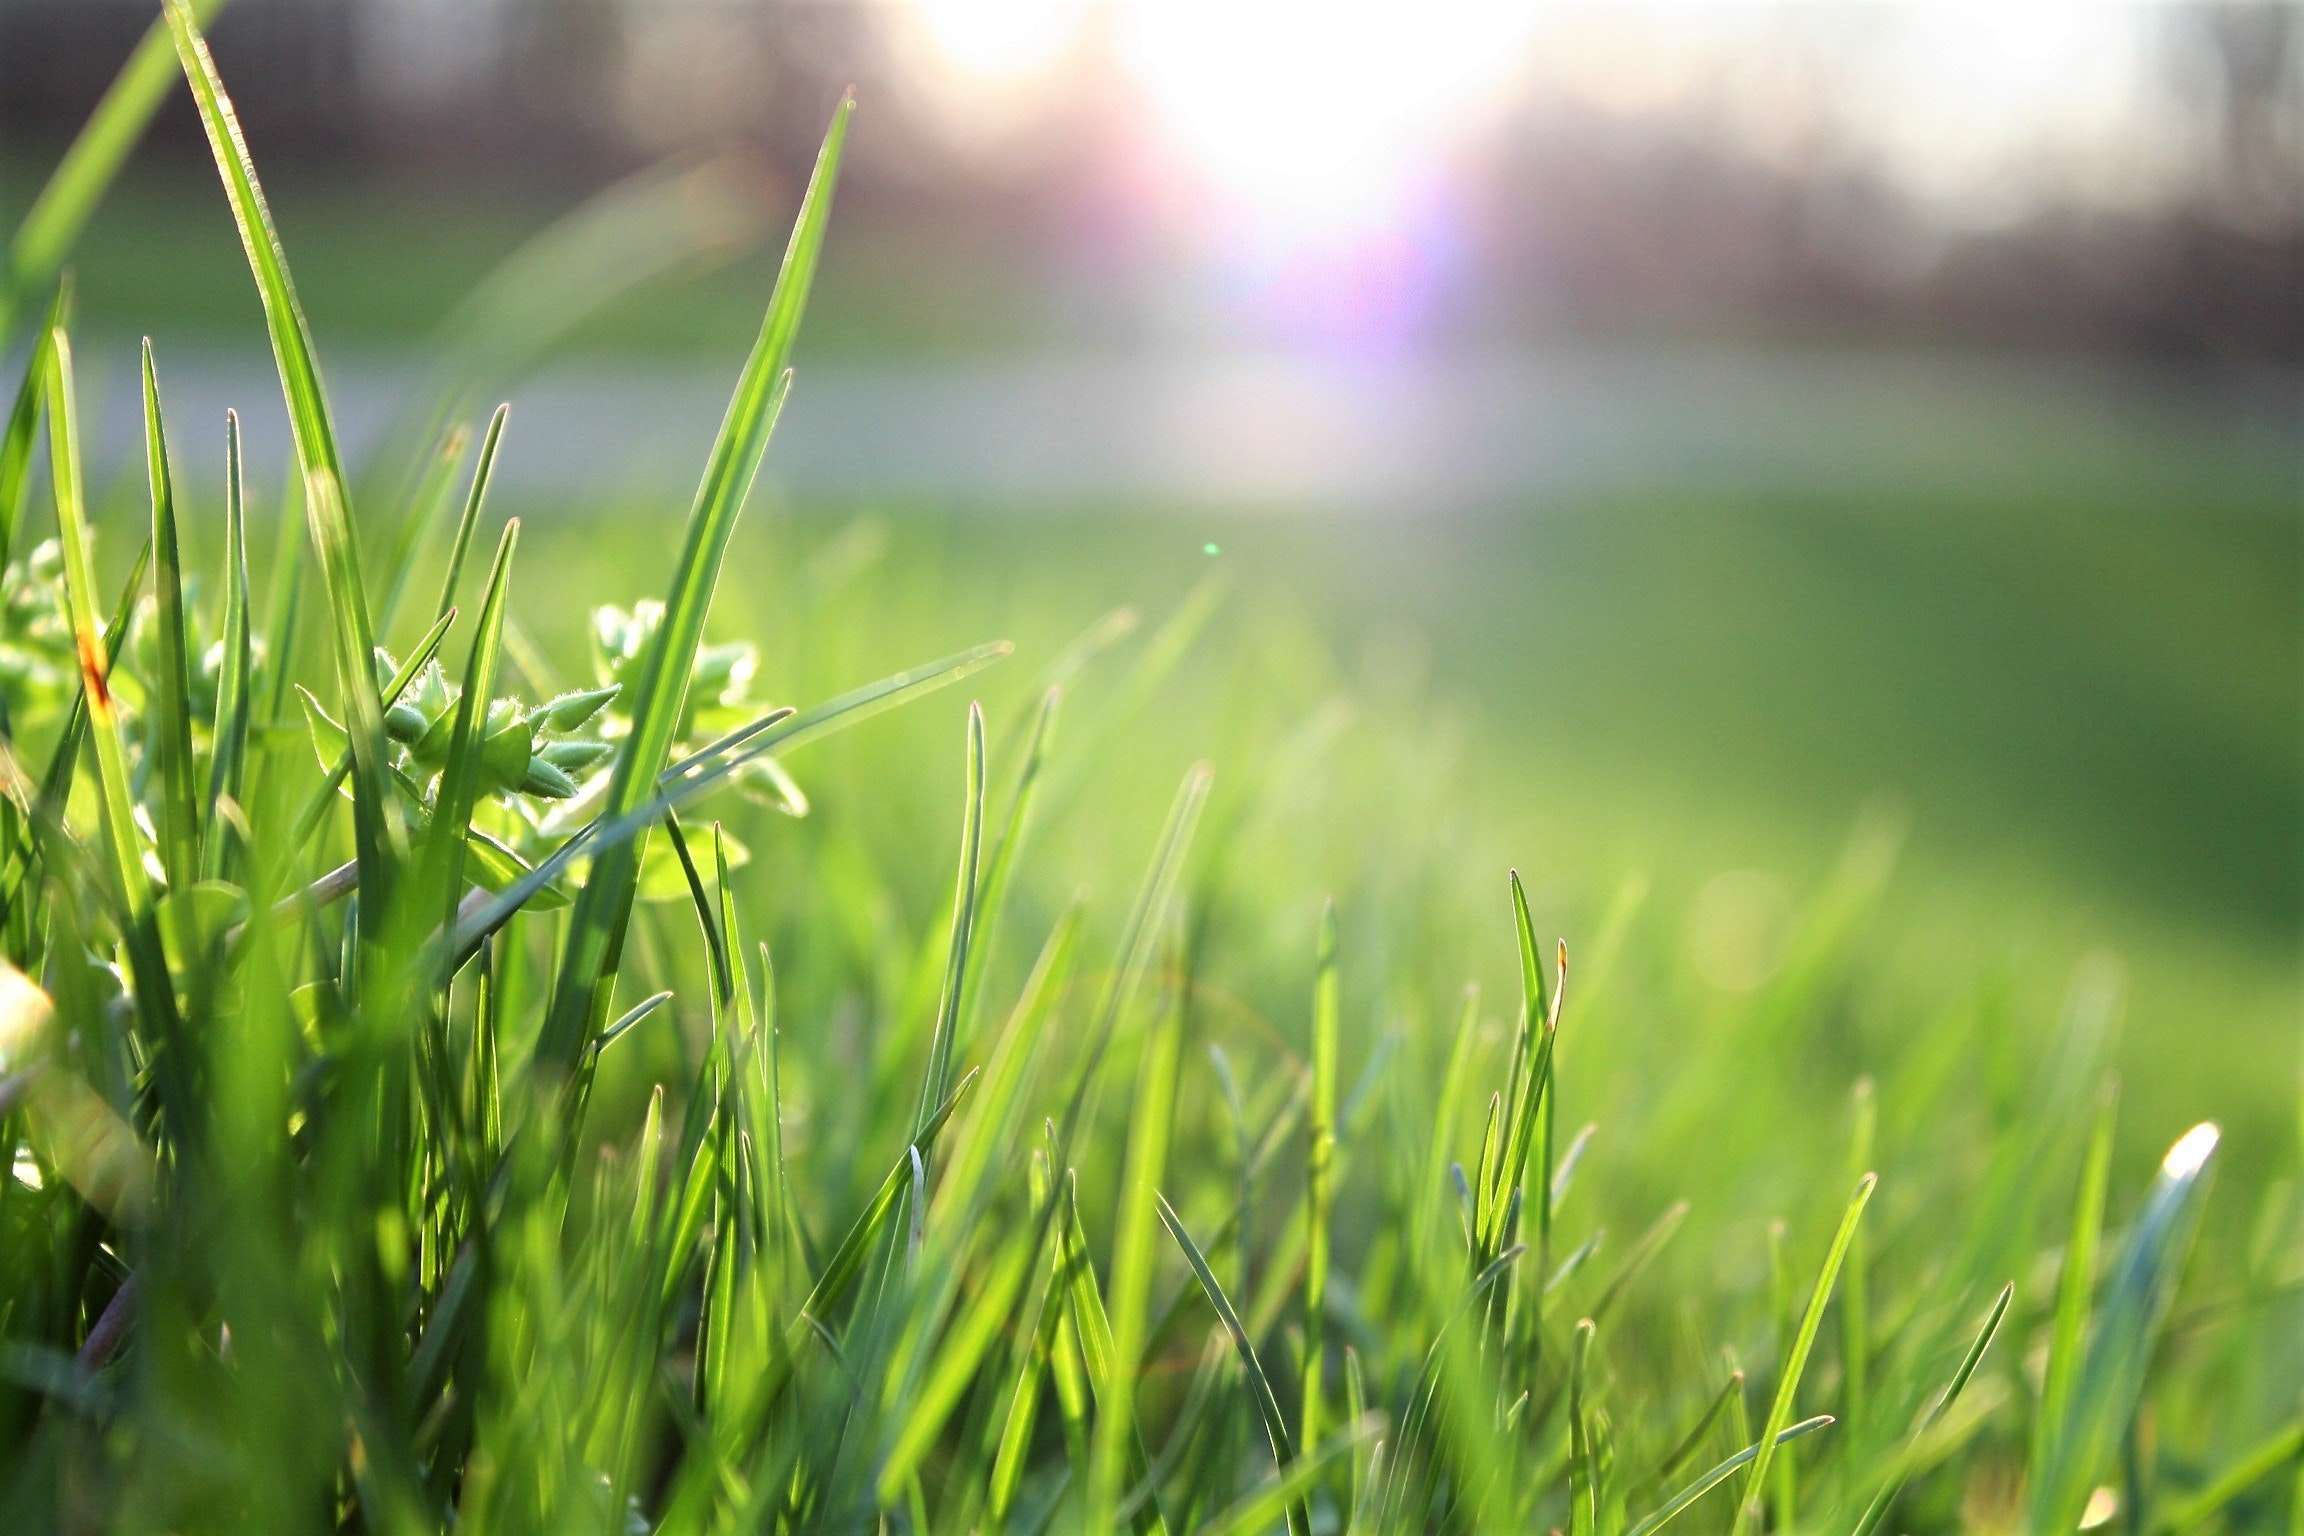 blade-of-grass-depth-of-field-environment-580900.jpg